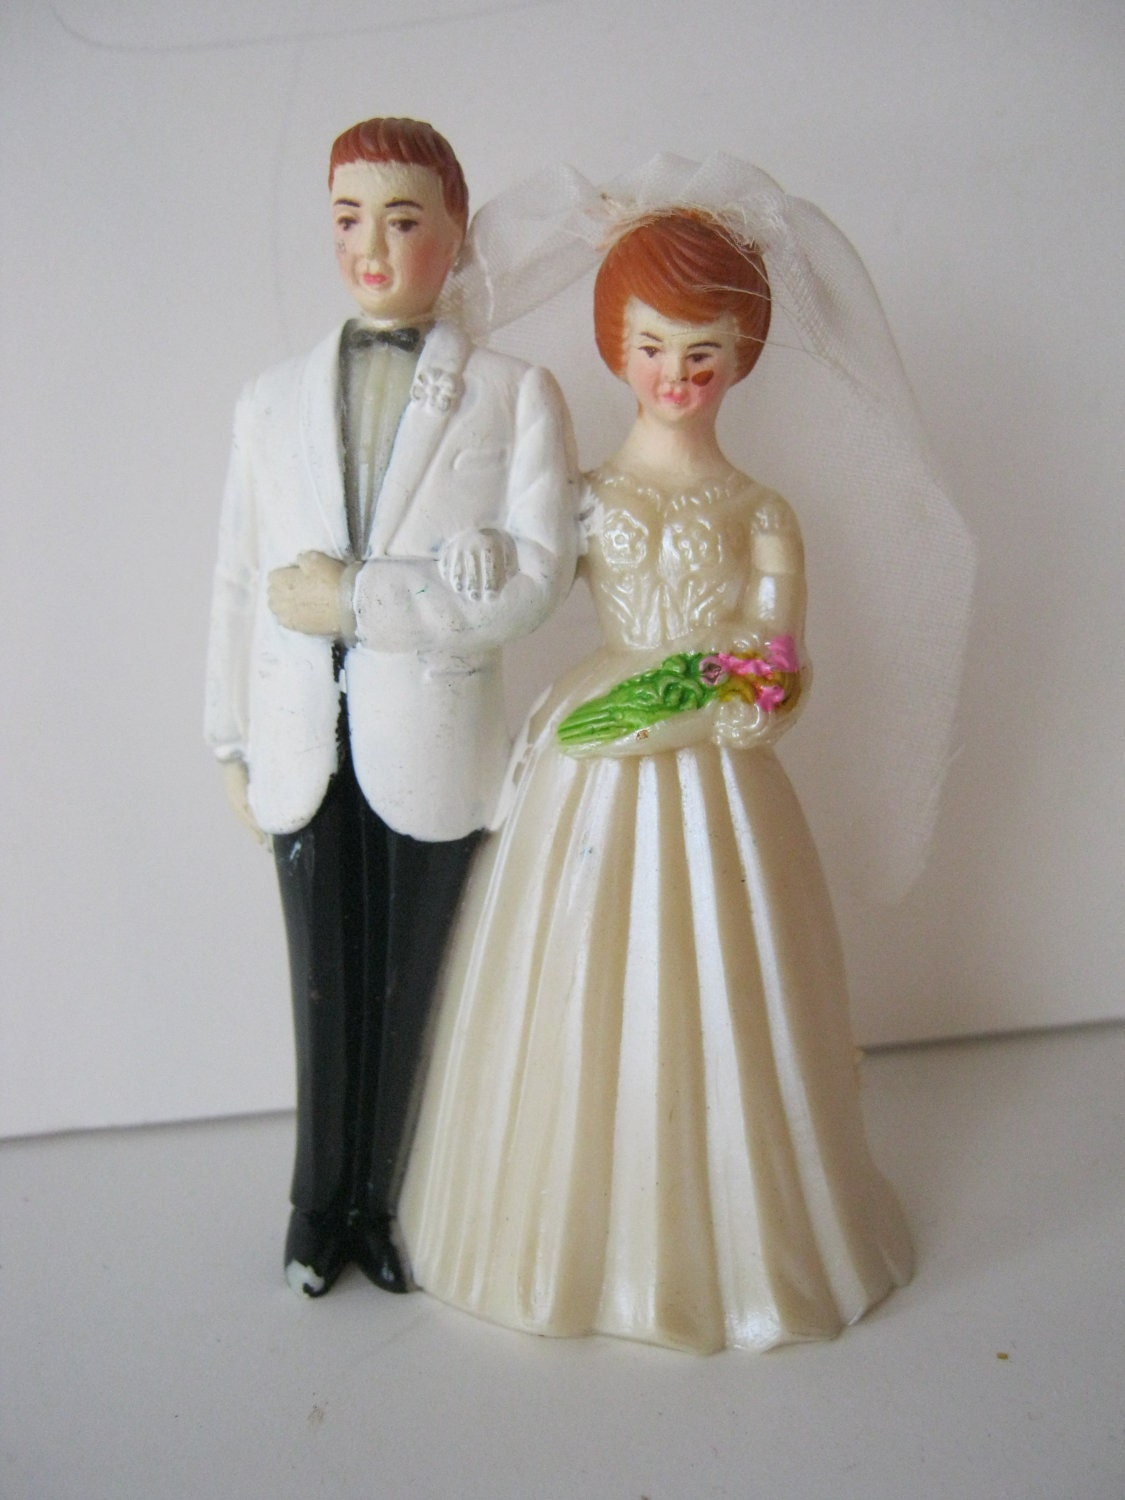 redhead wedding cake topper vintage and groom cake topper heads 1950 s or 19127